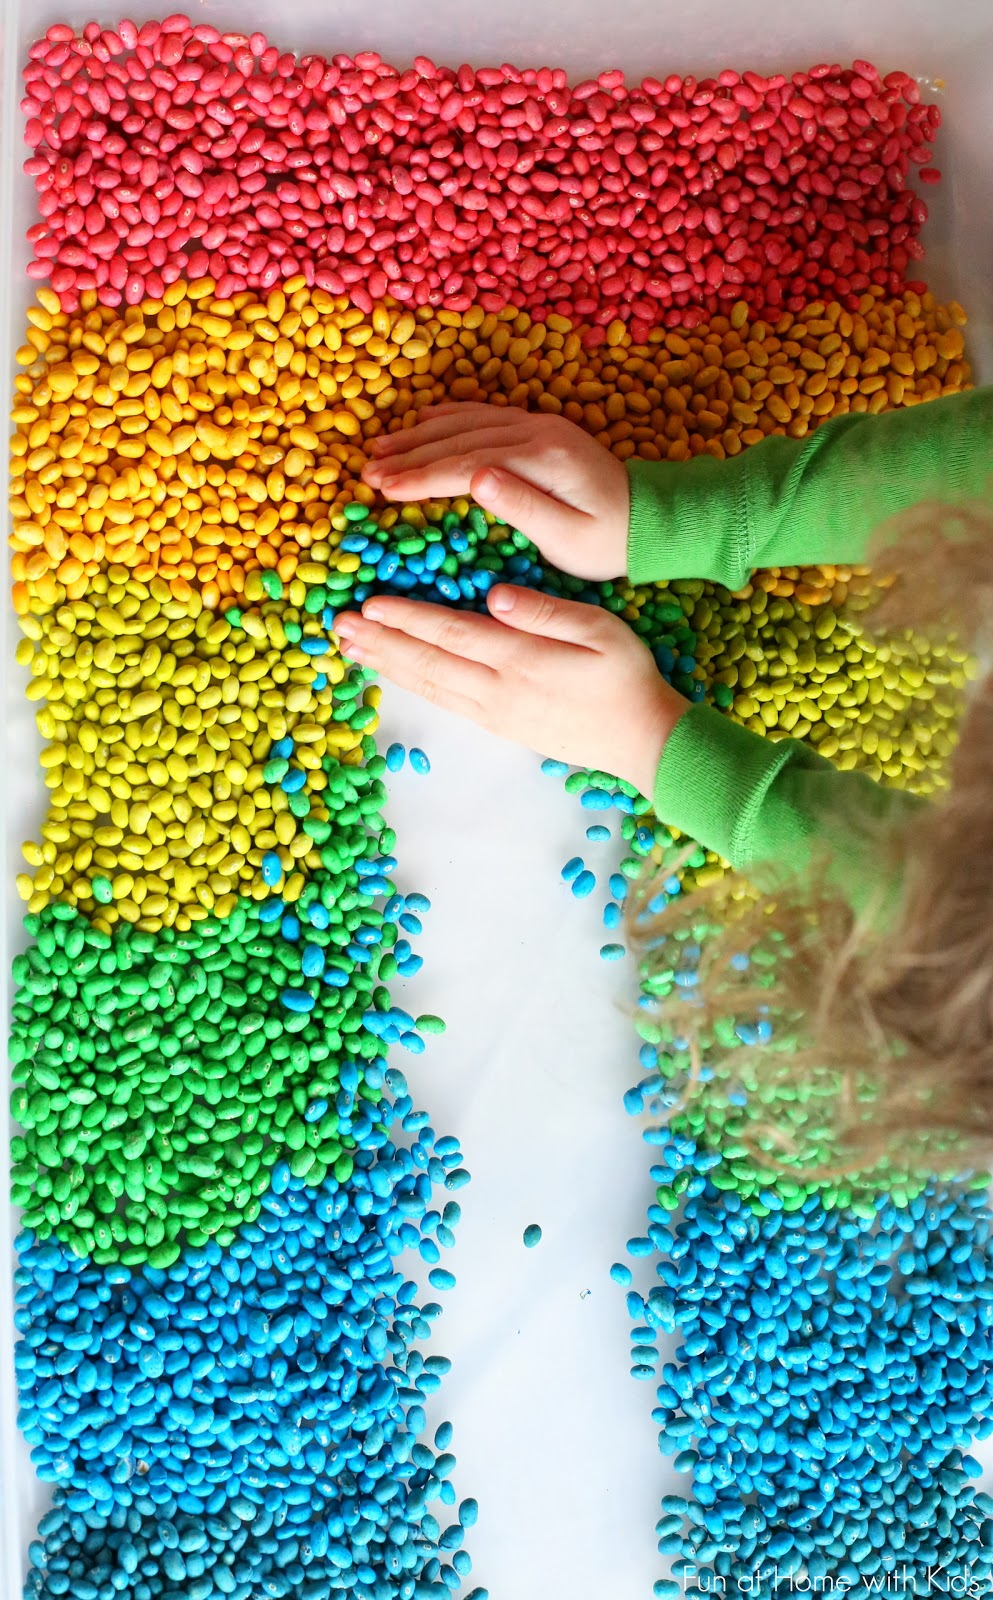 How to color beans for play and art for Fun projects for kids to do at home